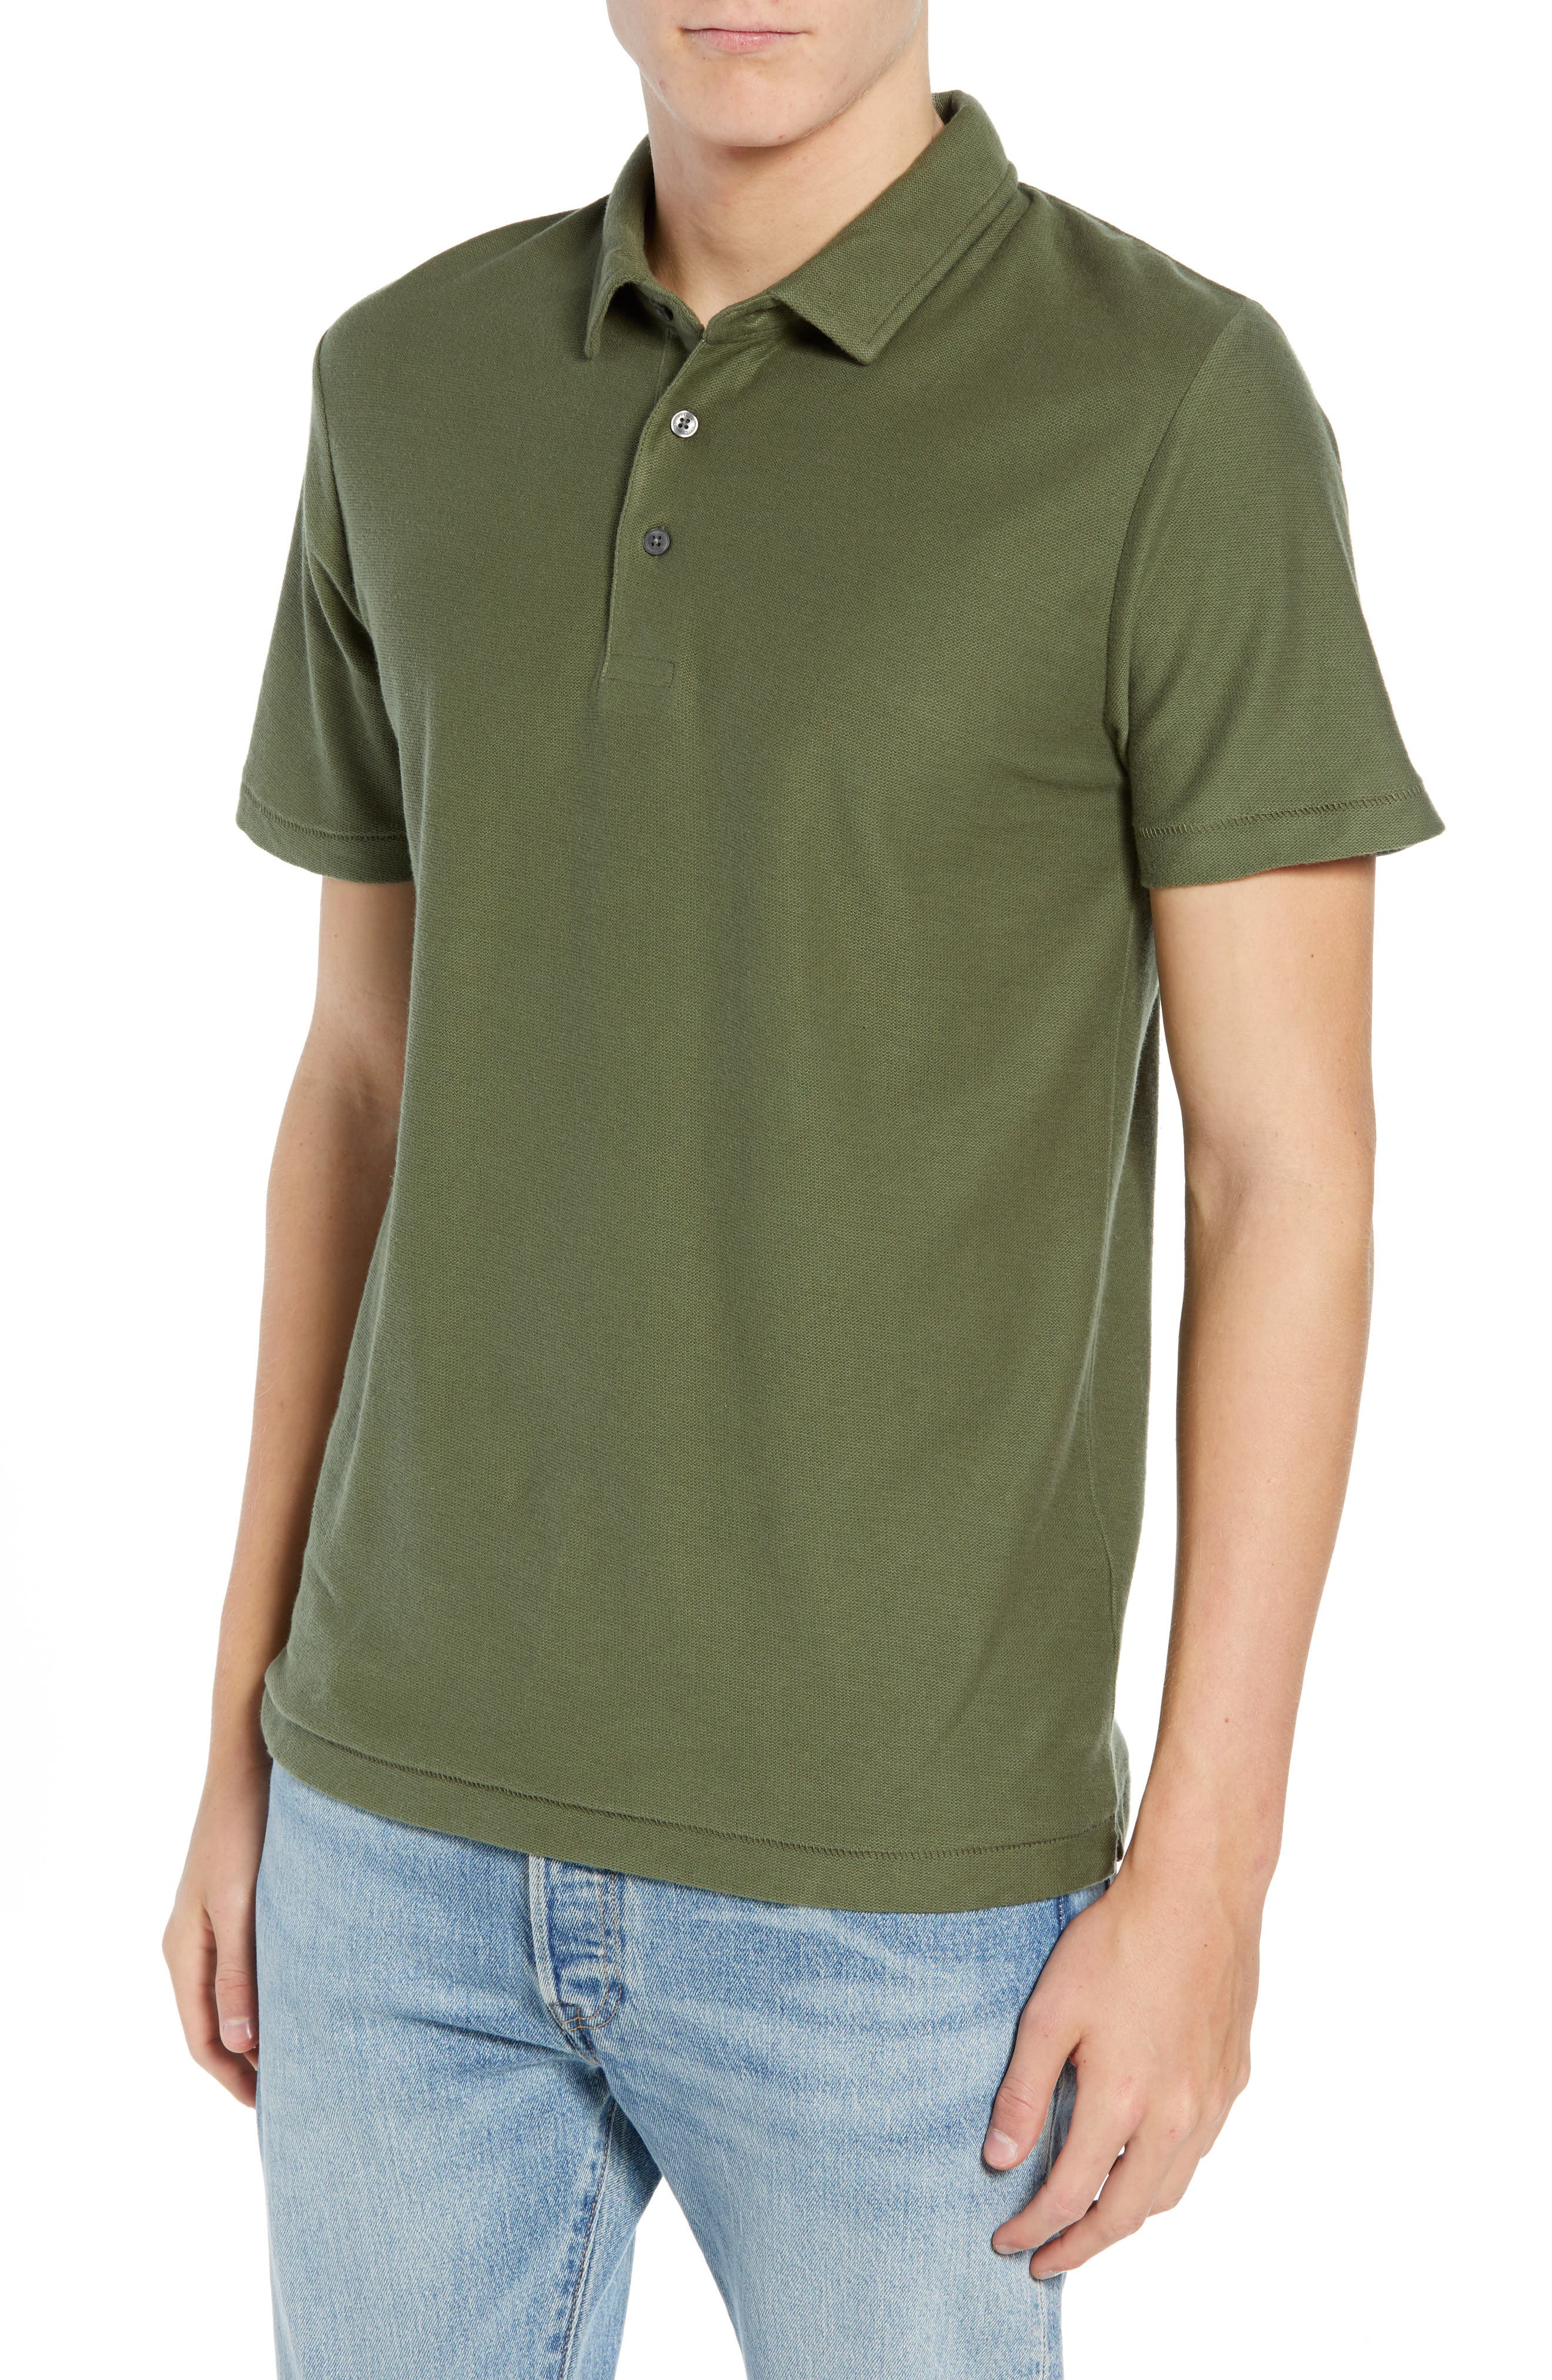 FRENCH CONNECTION, Solid Polo, Main thumbnail 1, color, 301